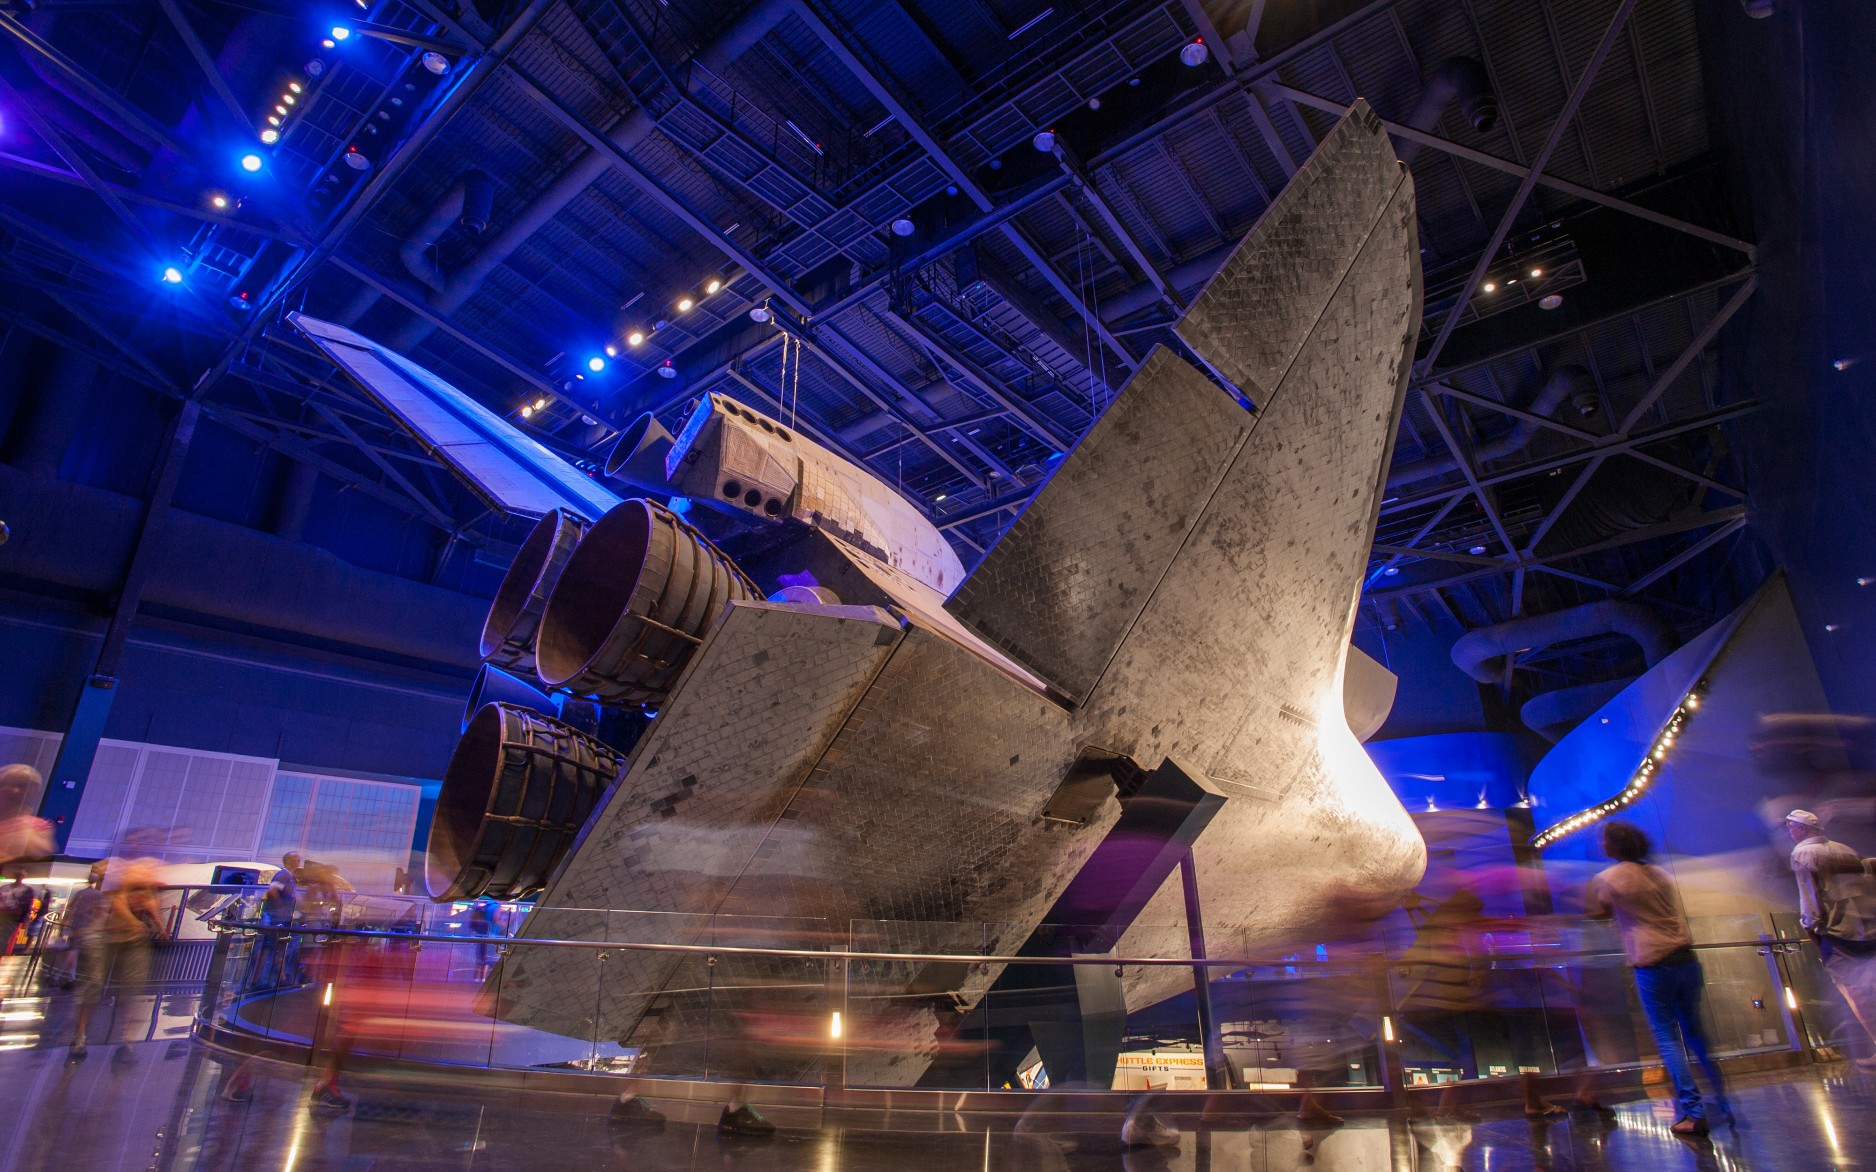 The lighting design heighten's the drama of the shuttle, which is suspended 30 feet in the air and tilted, allowing 360-degree views.